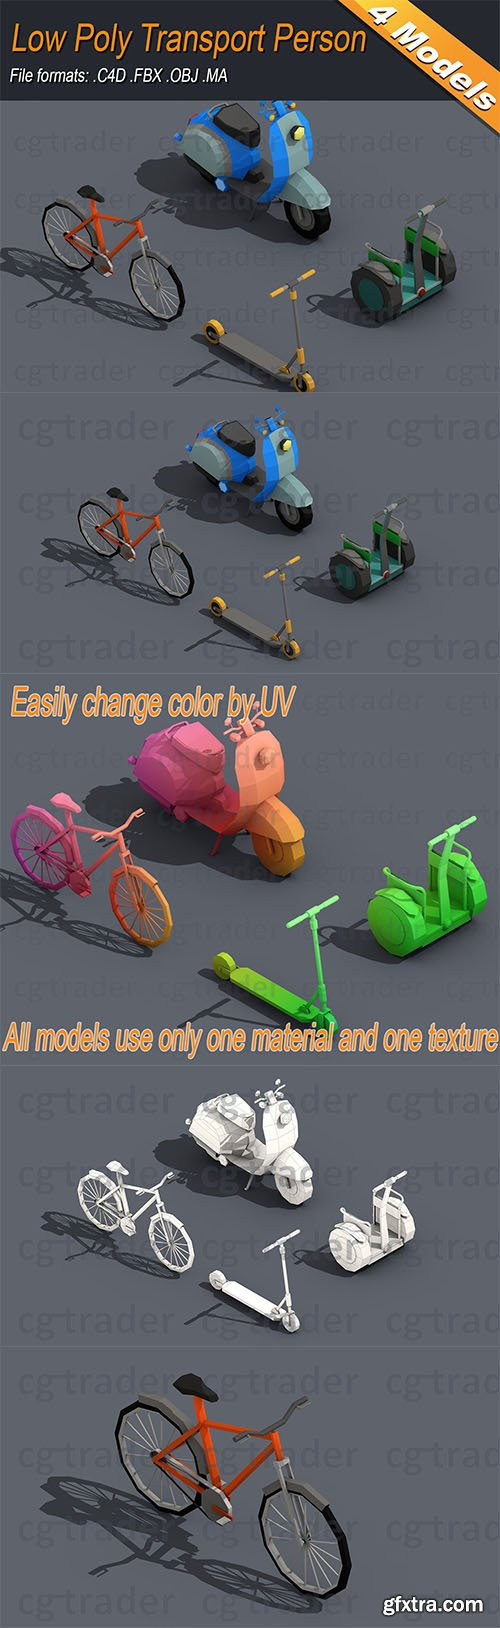 Cgtrader - Low Poly Transport Person Isometric Low-poly 3D model